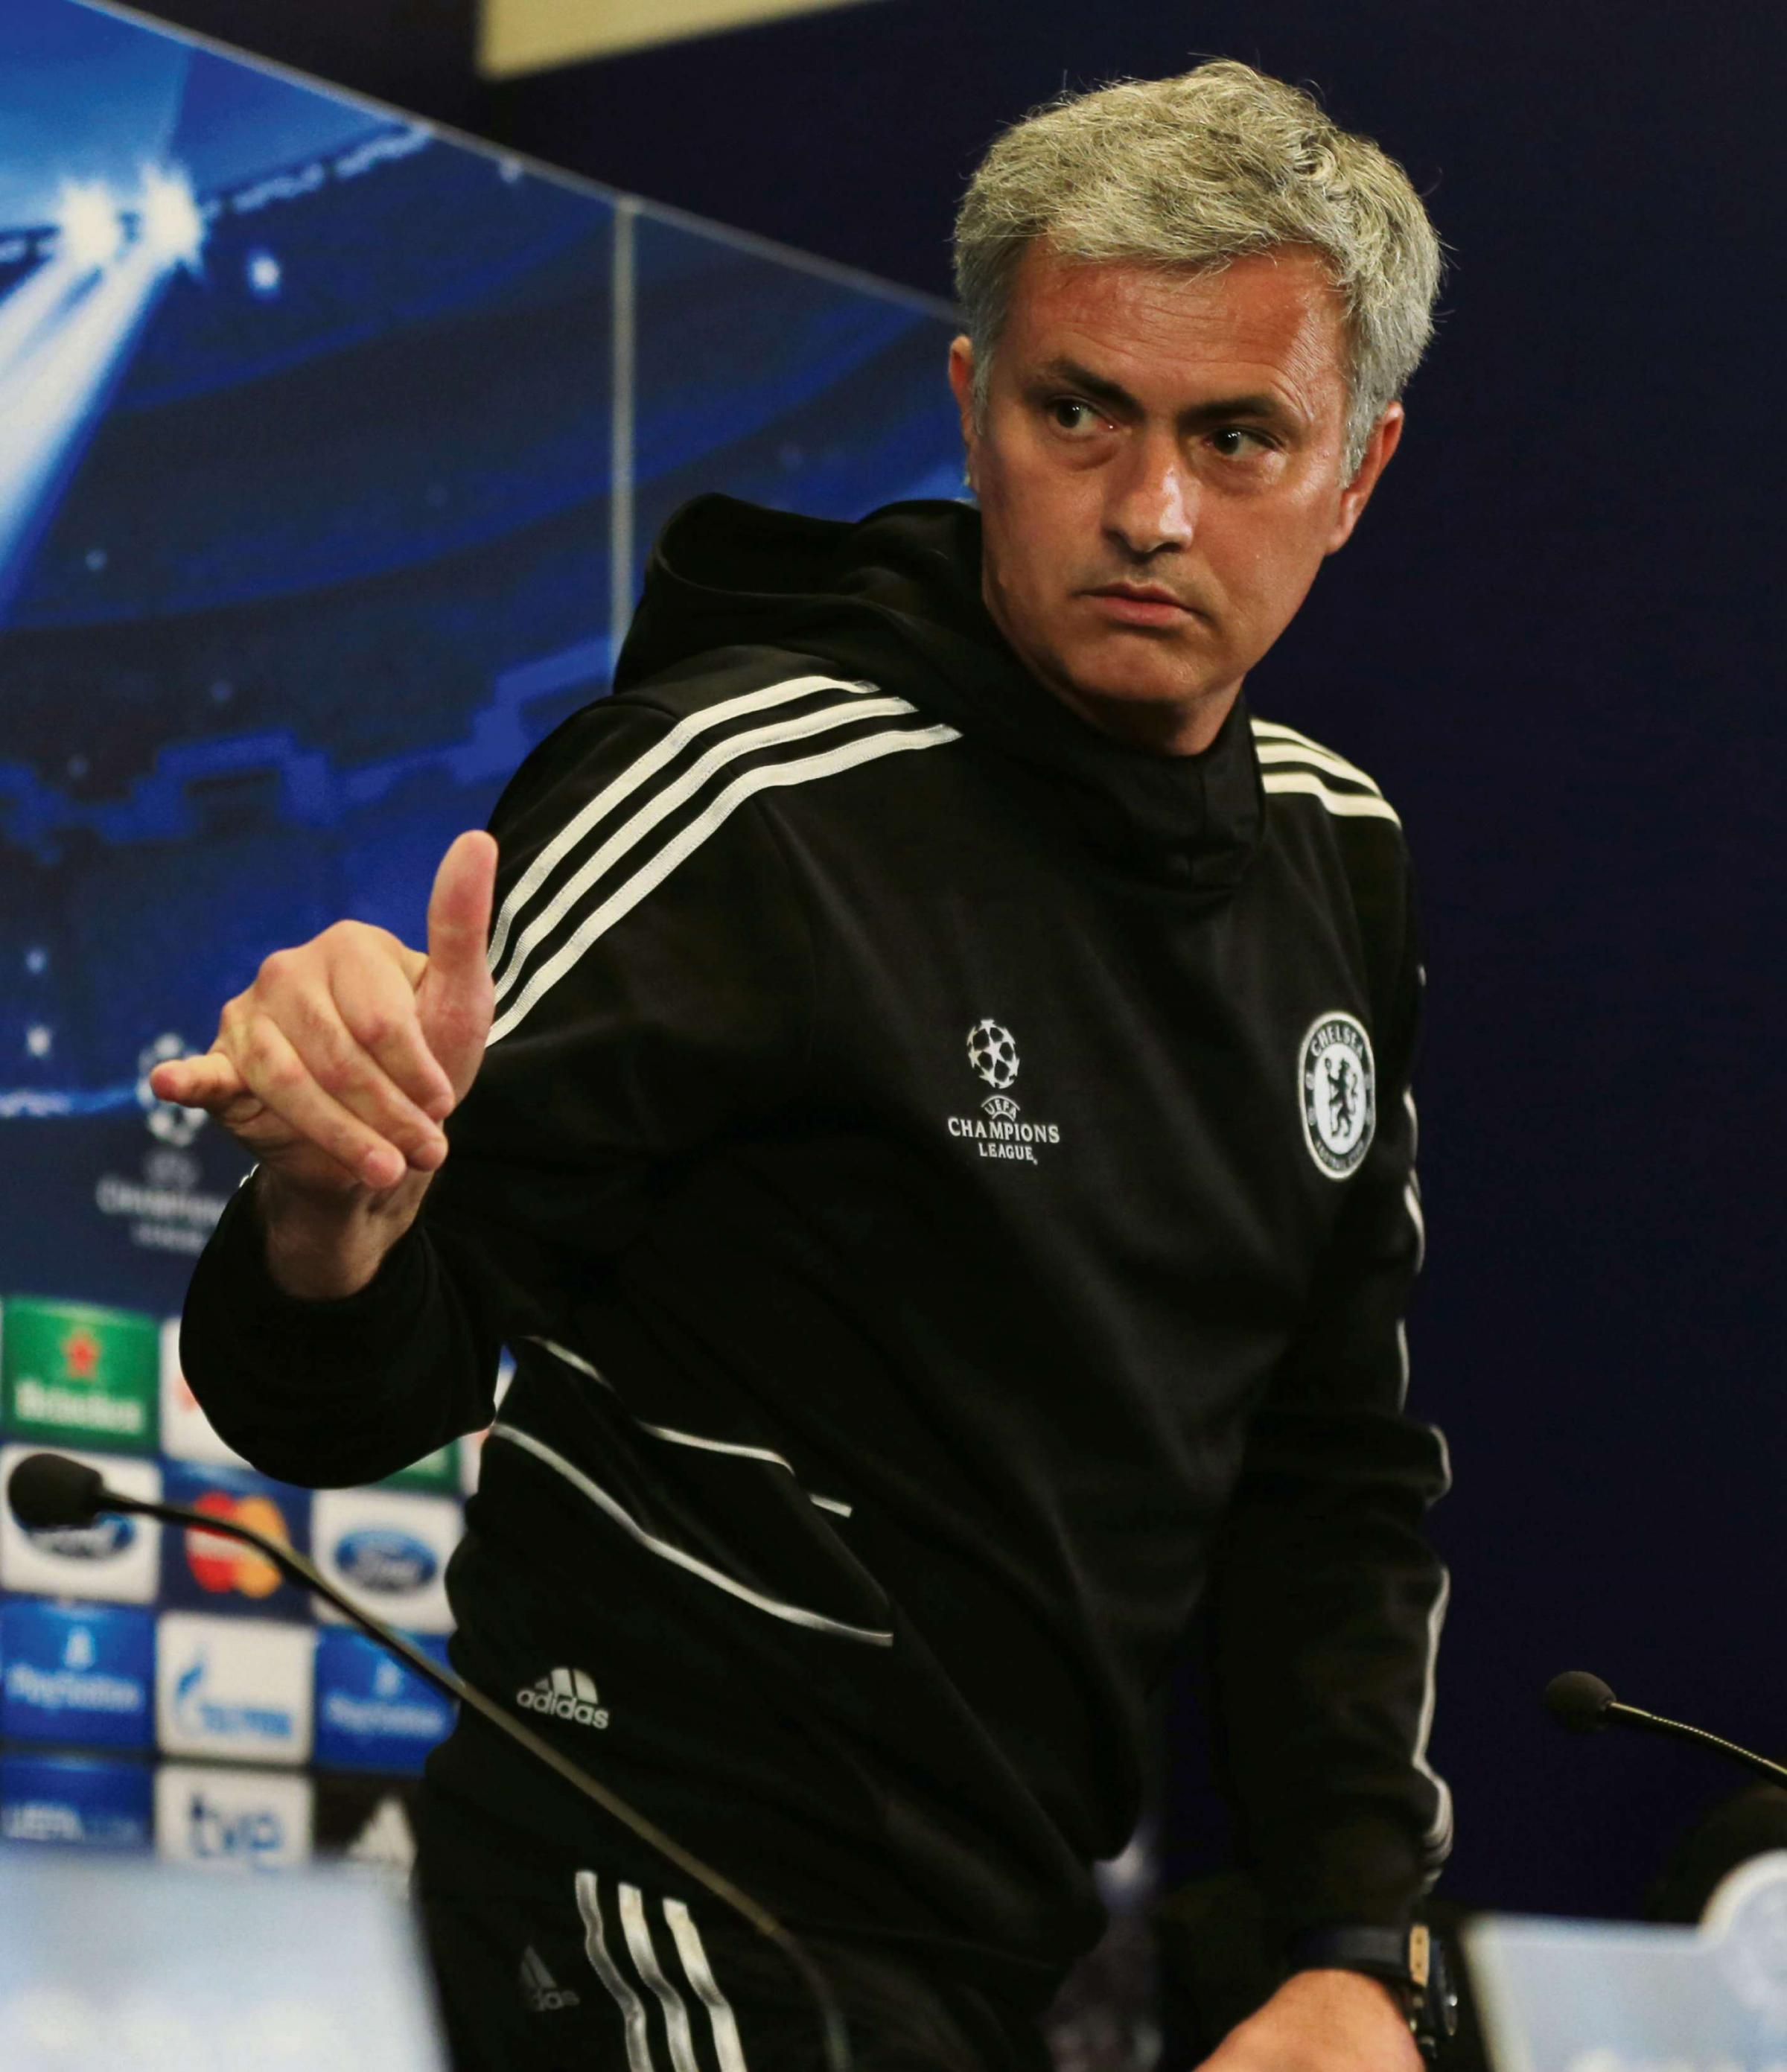 FINED: Jose Mourinho has to pay up £10,000 in relation to comments he made